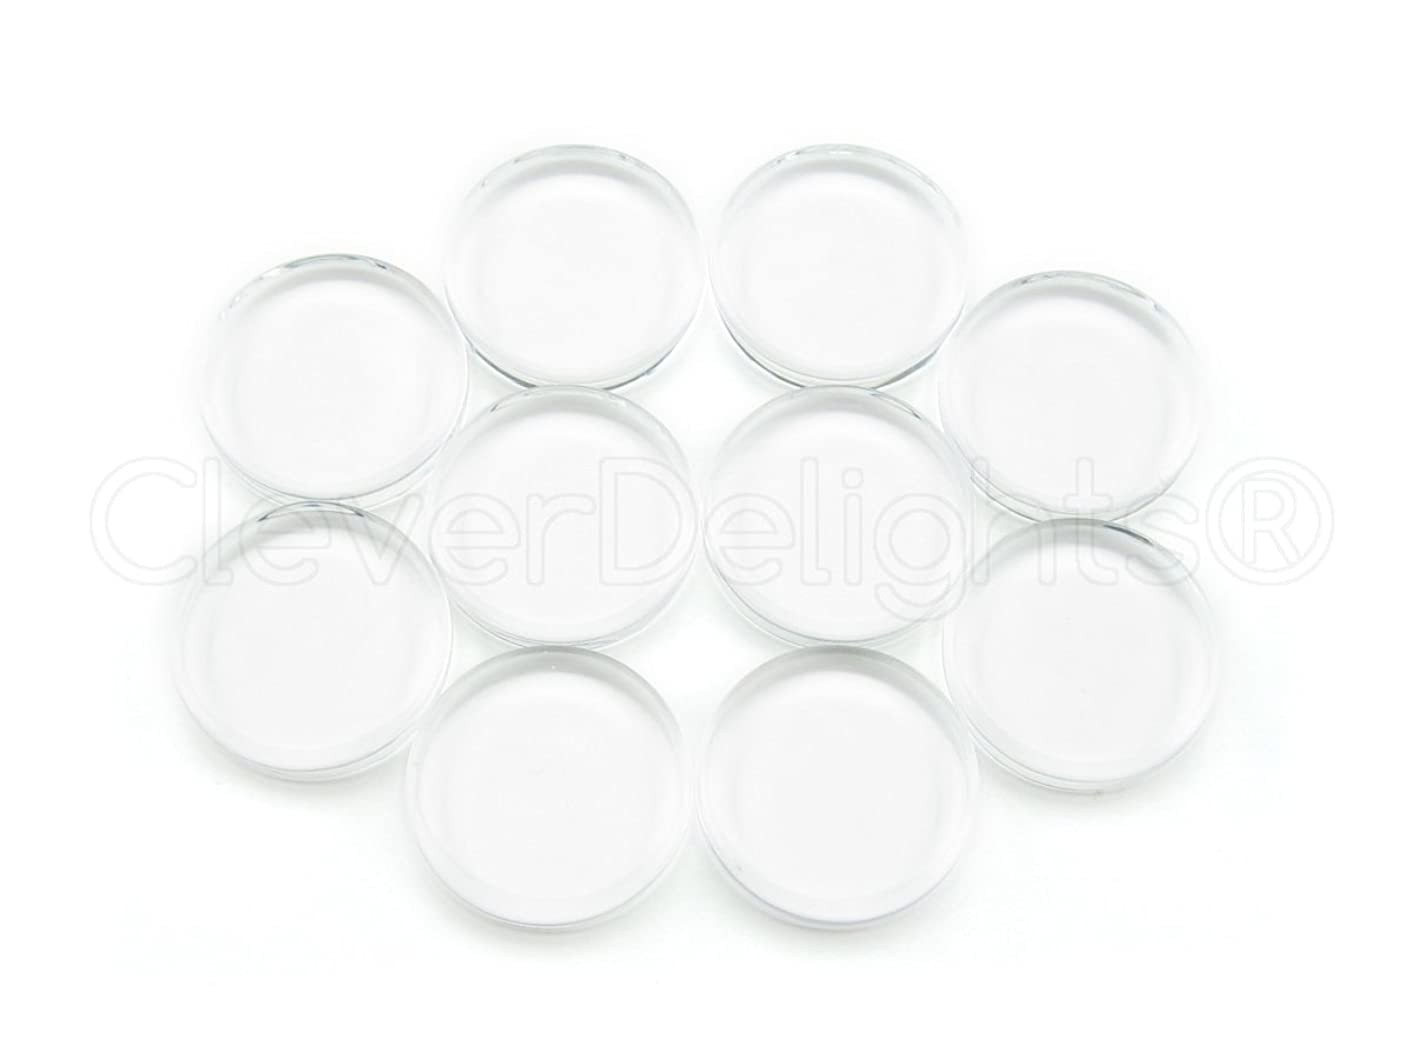 100 CleverDelights 16mm Round Glass Tiles - 5/8